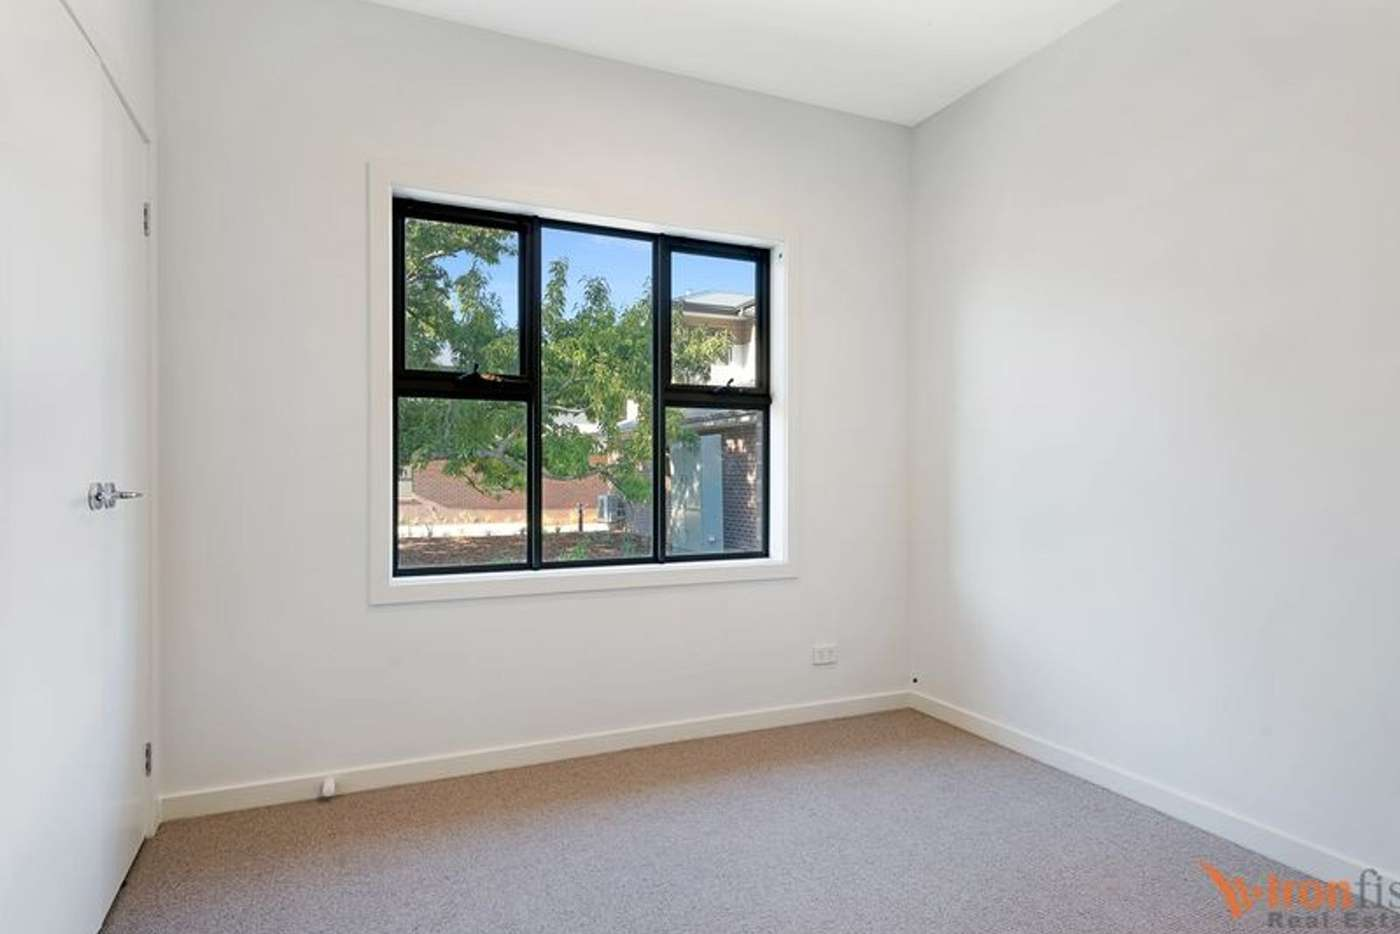 Sixth view of Homely townhouse listing, 27/520-528 Mitcham Road, Mitcham VIC 3132